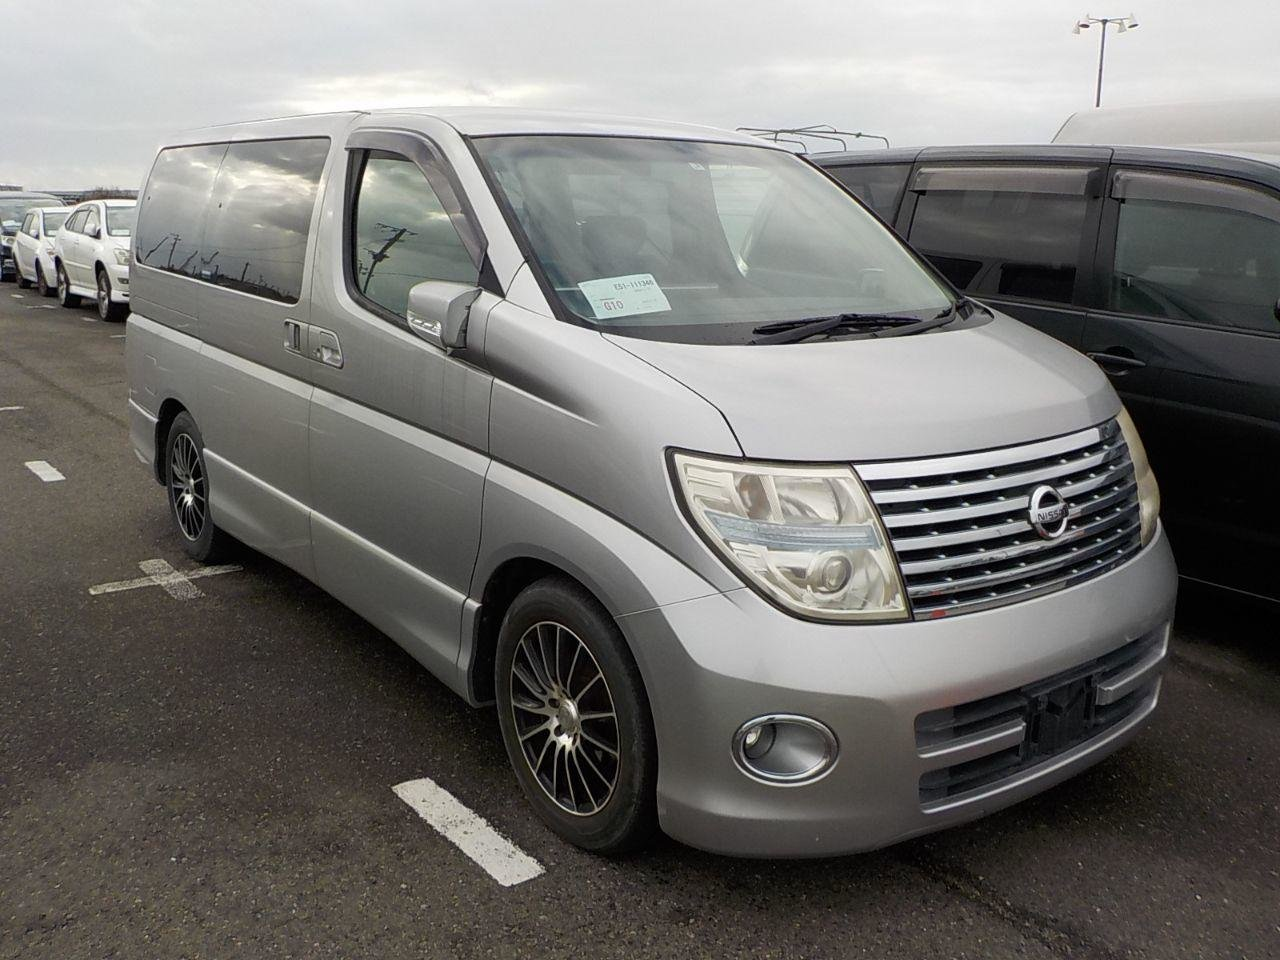 2005 Nissan Elgrand 3.5 Highway Star E51 For Sale (picture 1 of 5)